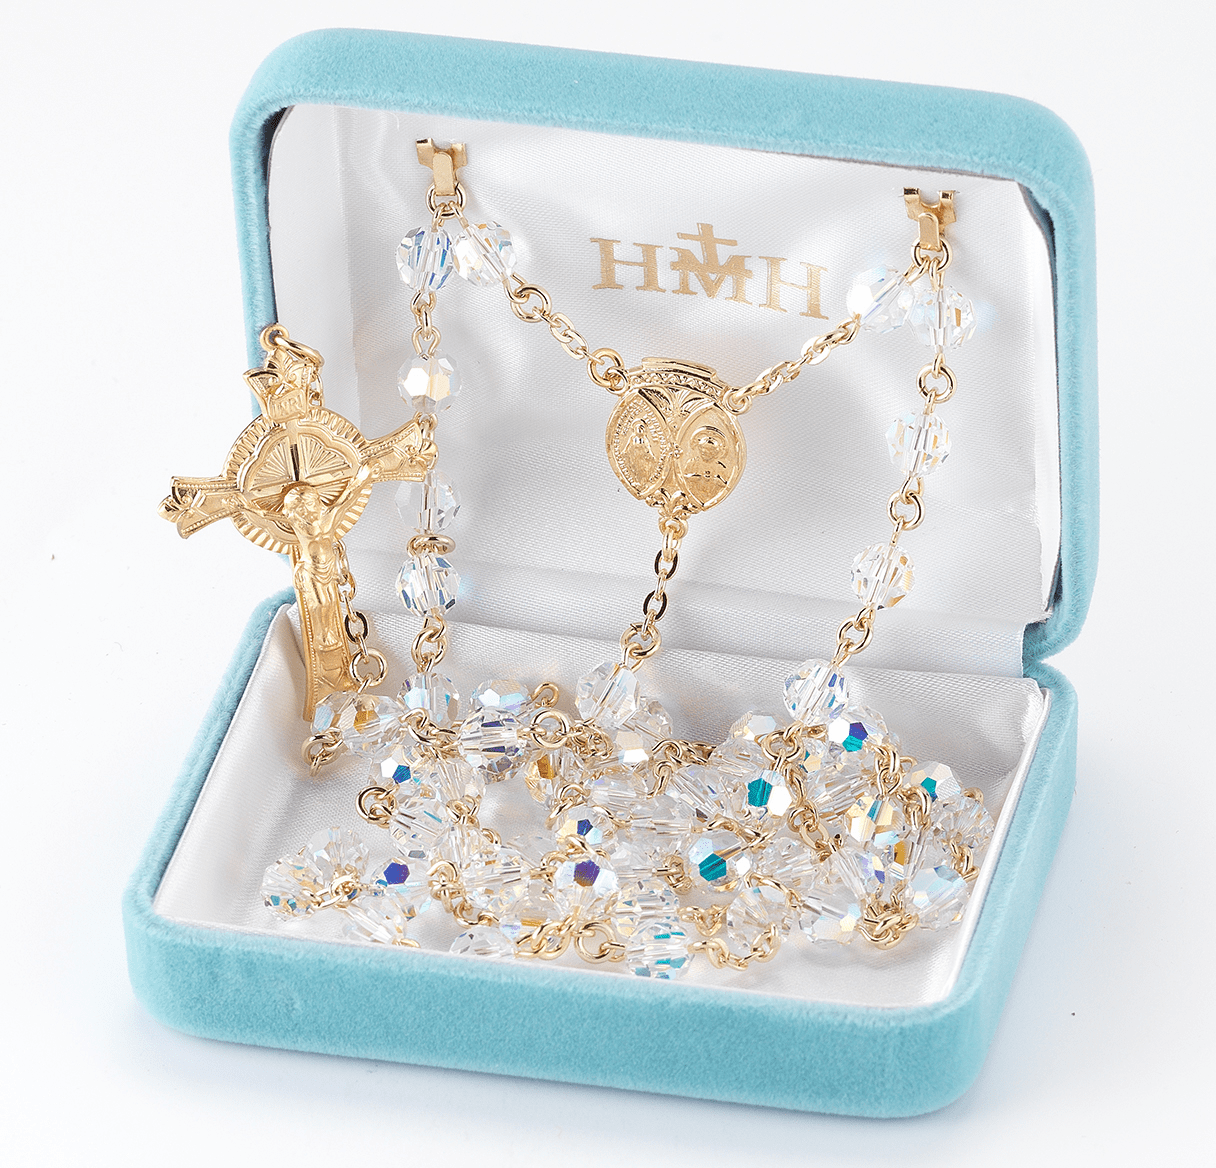 Scapular Swarovski Crystal Gold over Sterling Silver Catholic Rosary by HMH Religious